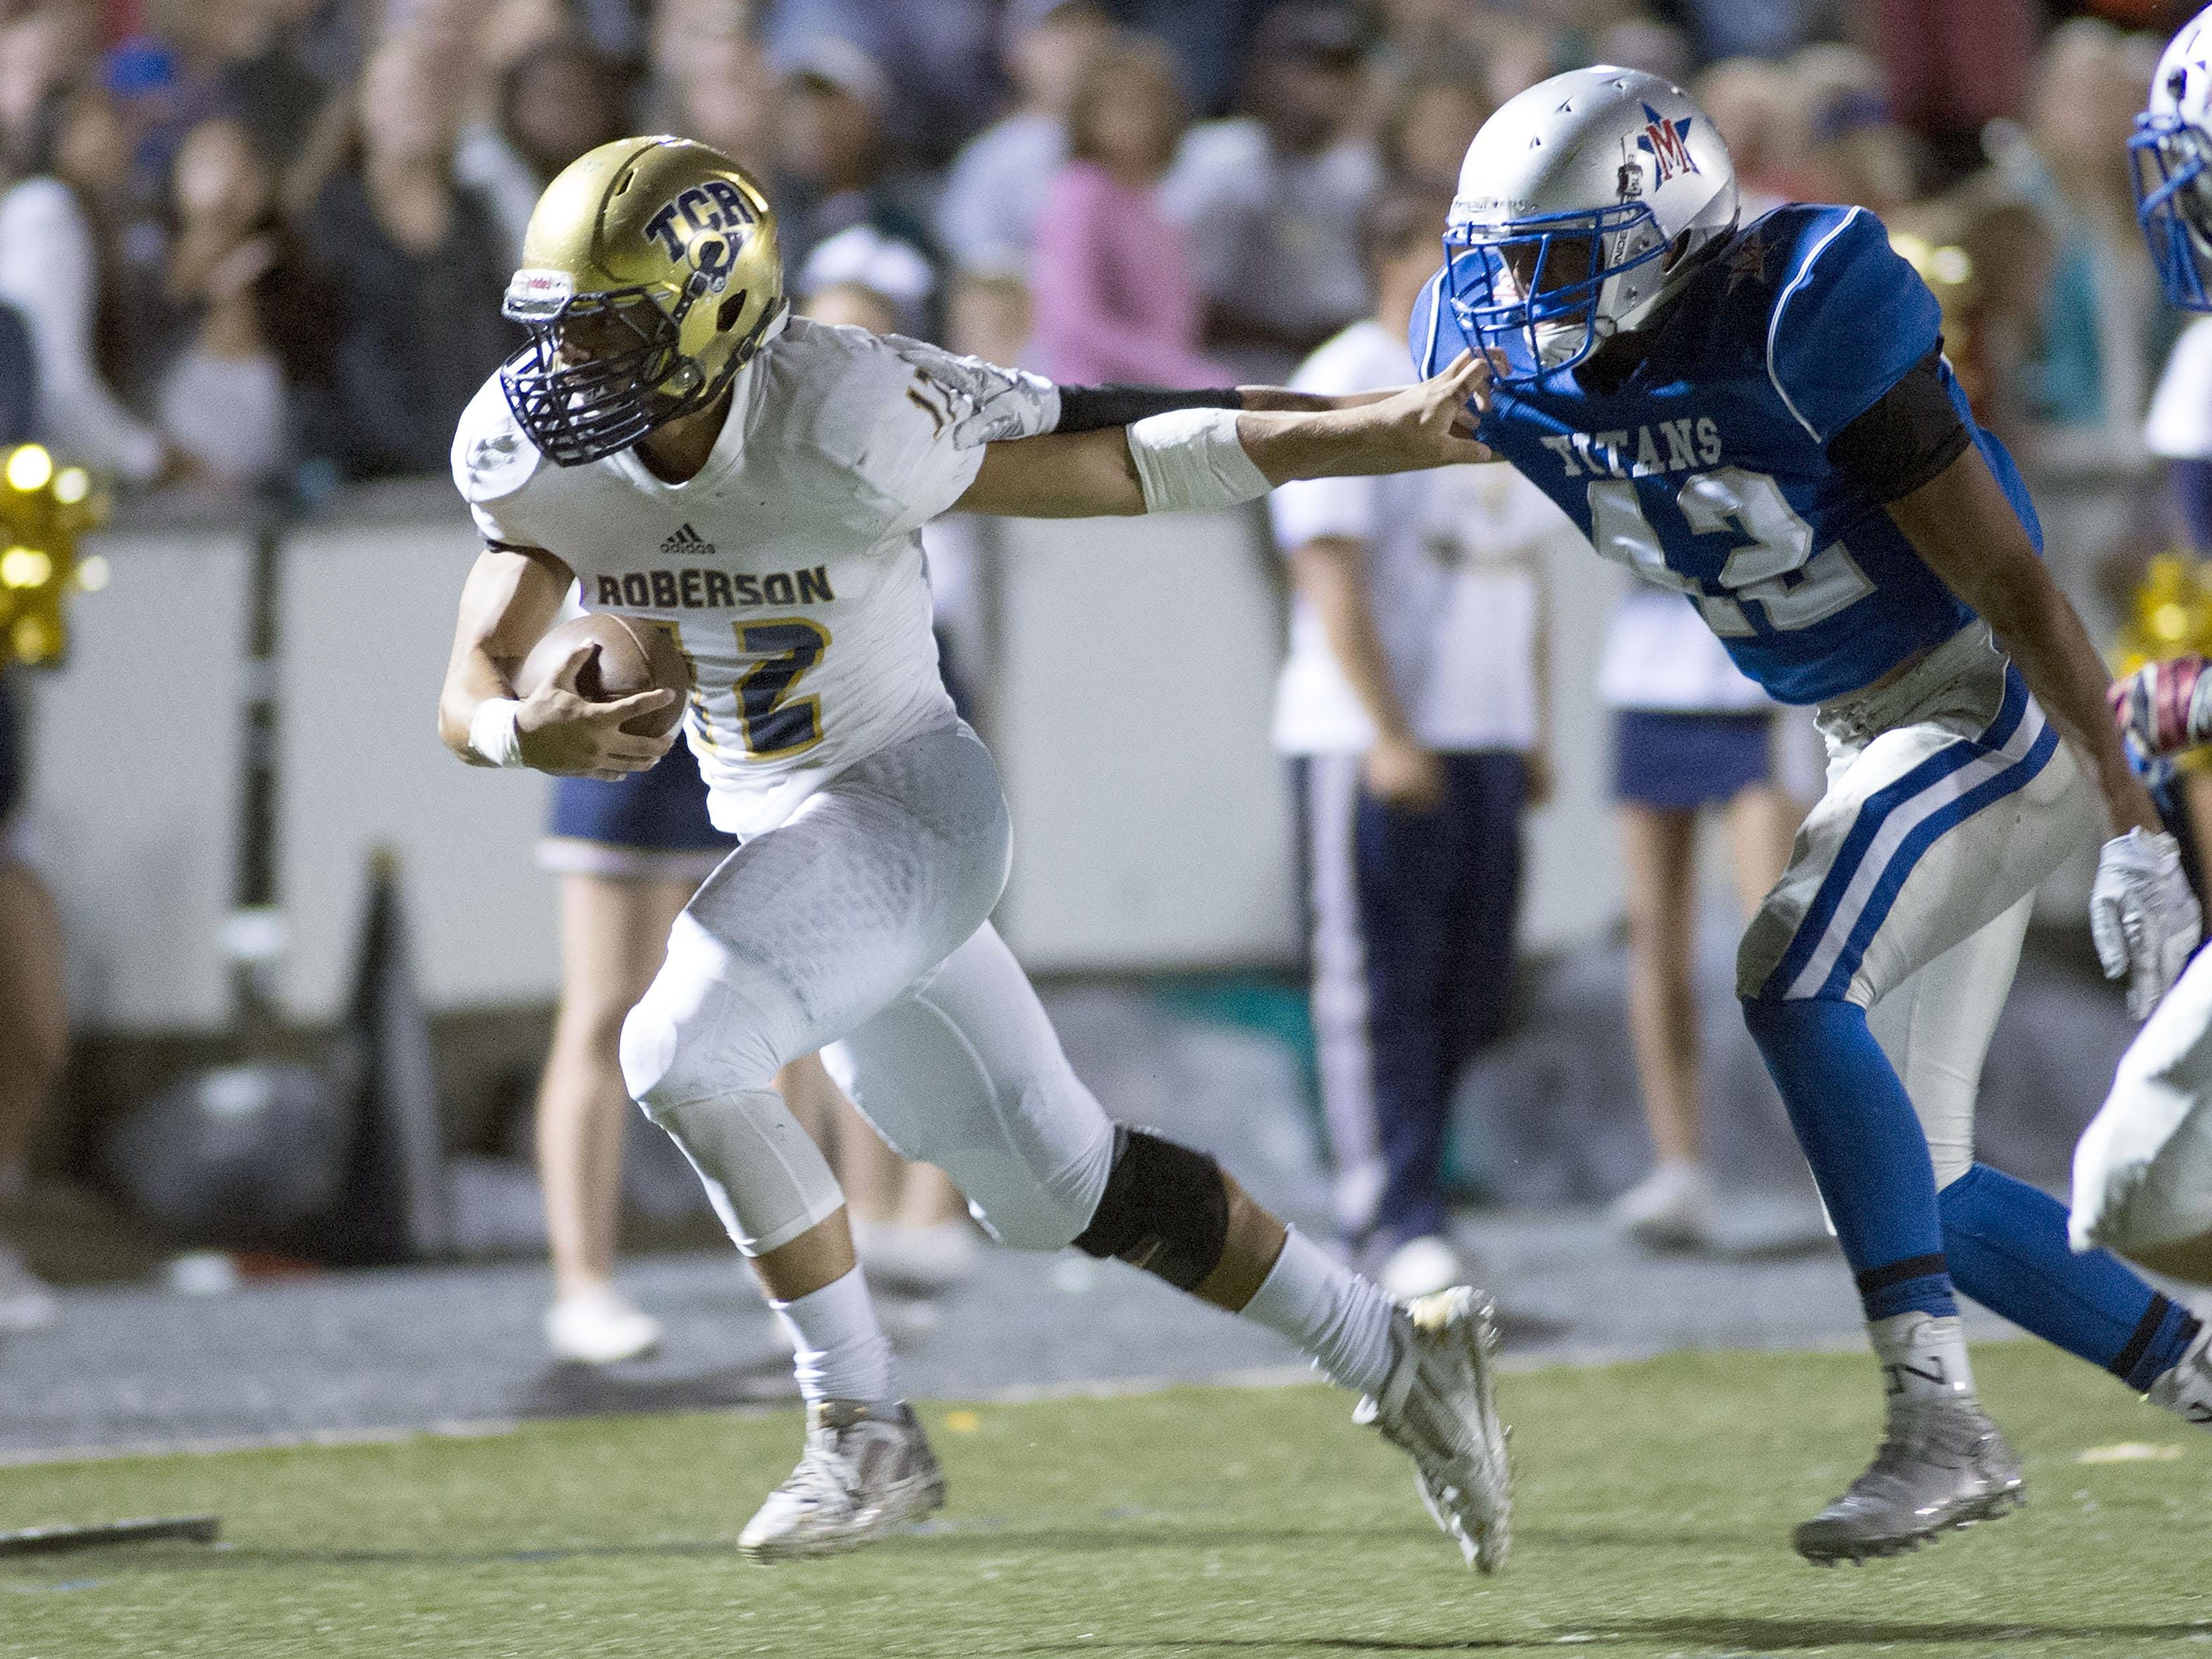 Roberson's Chris Barnwell, 12, uses a stiff arm before scoring for the Rams against McDowell.